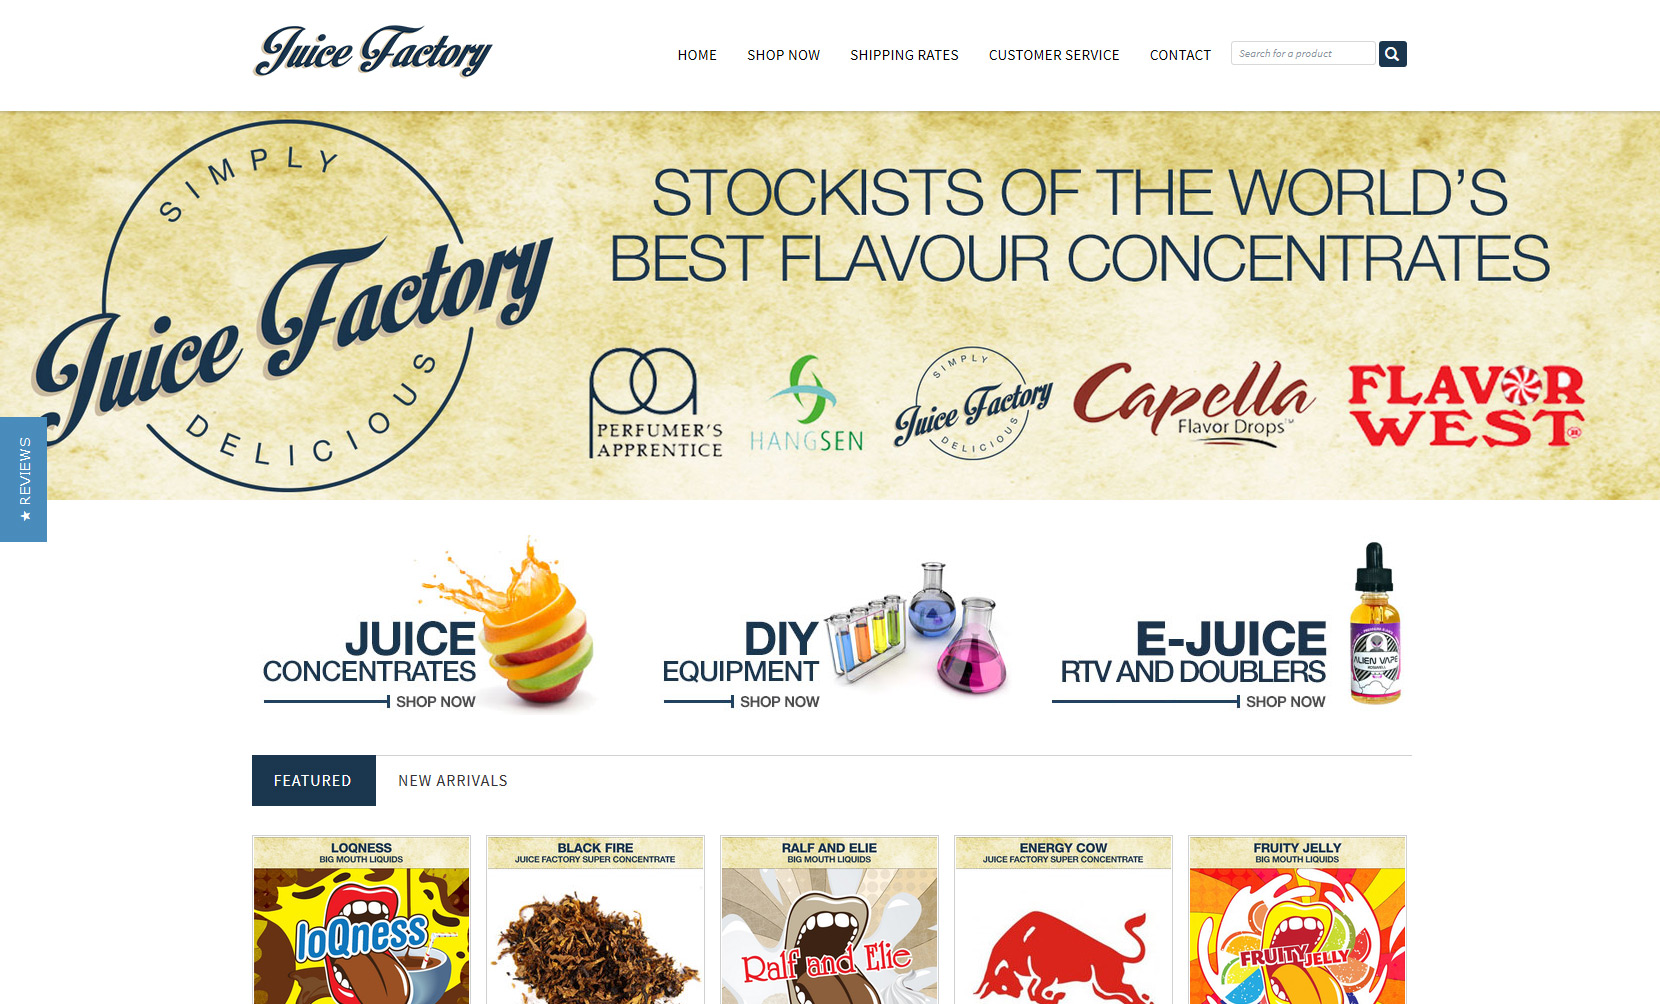 VaporFi Australia - Best Places to Buy E-Liquid: Juice Factory